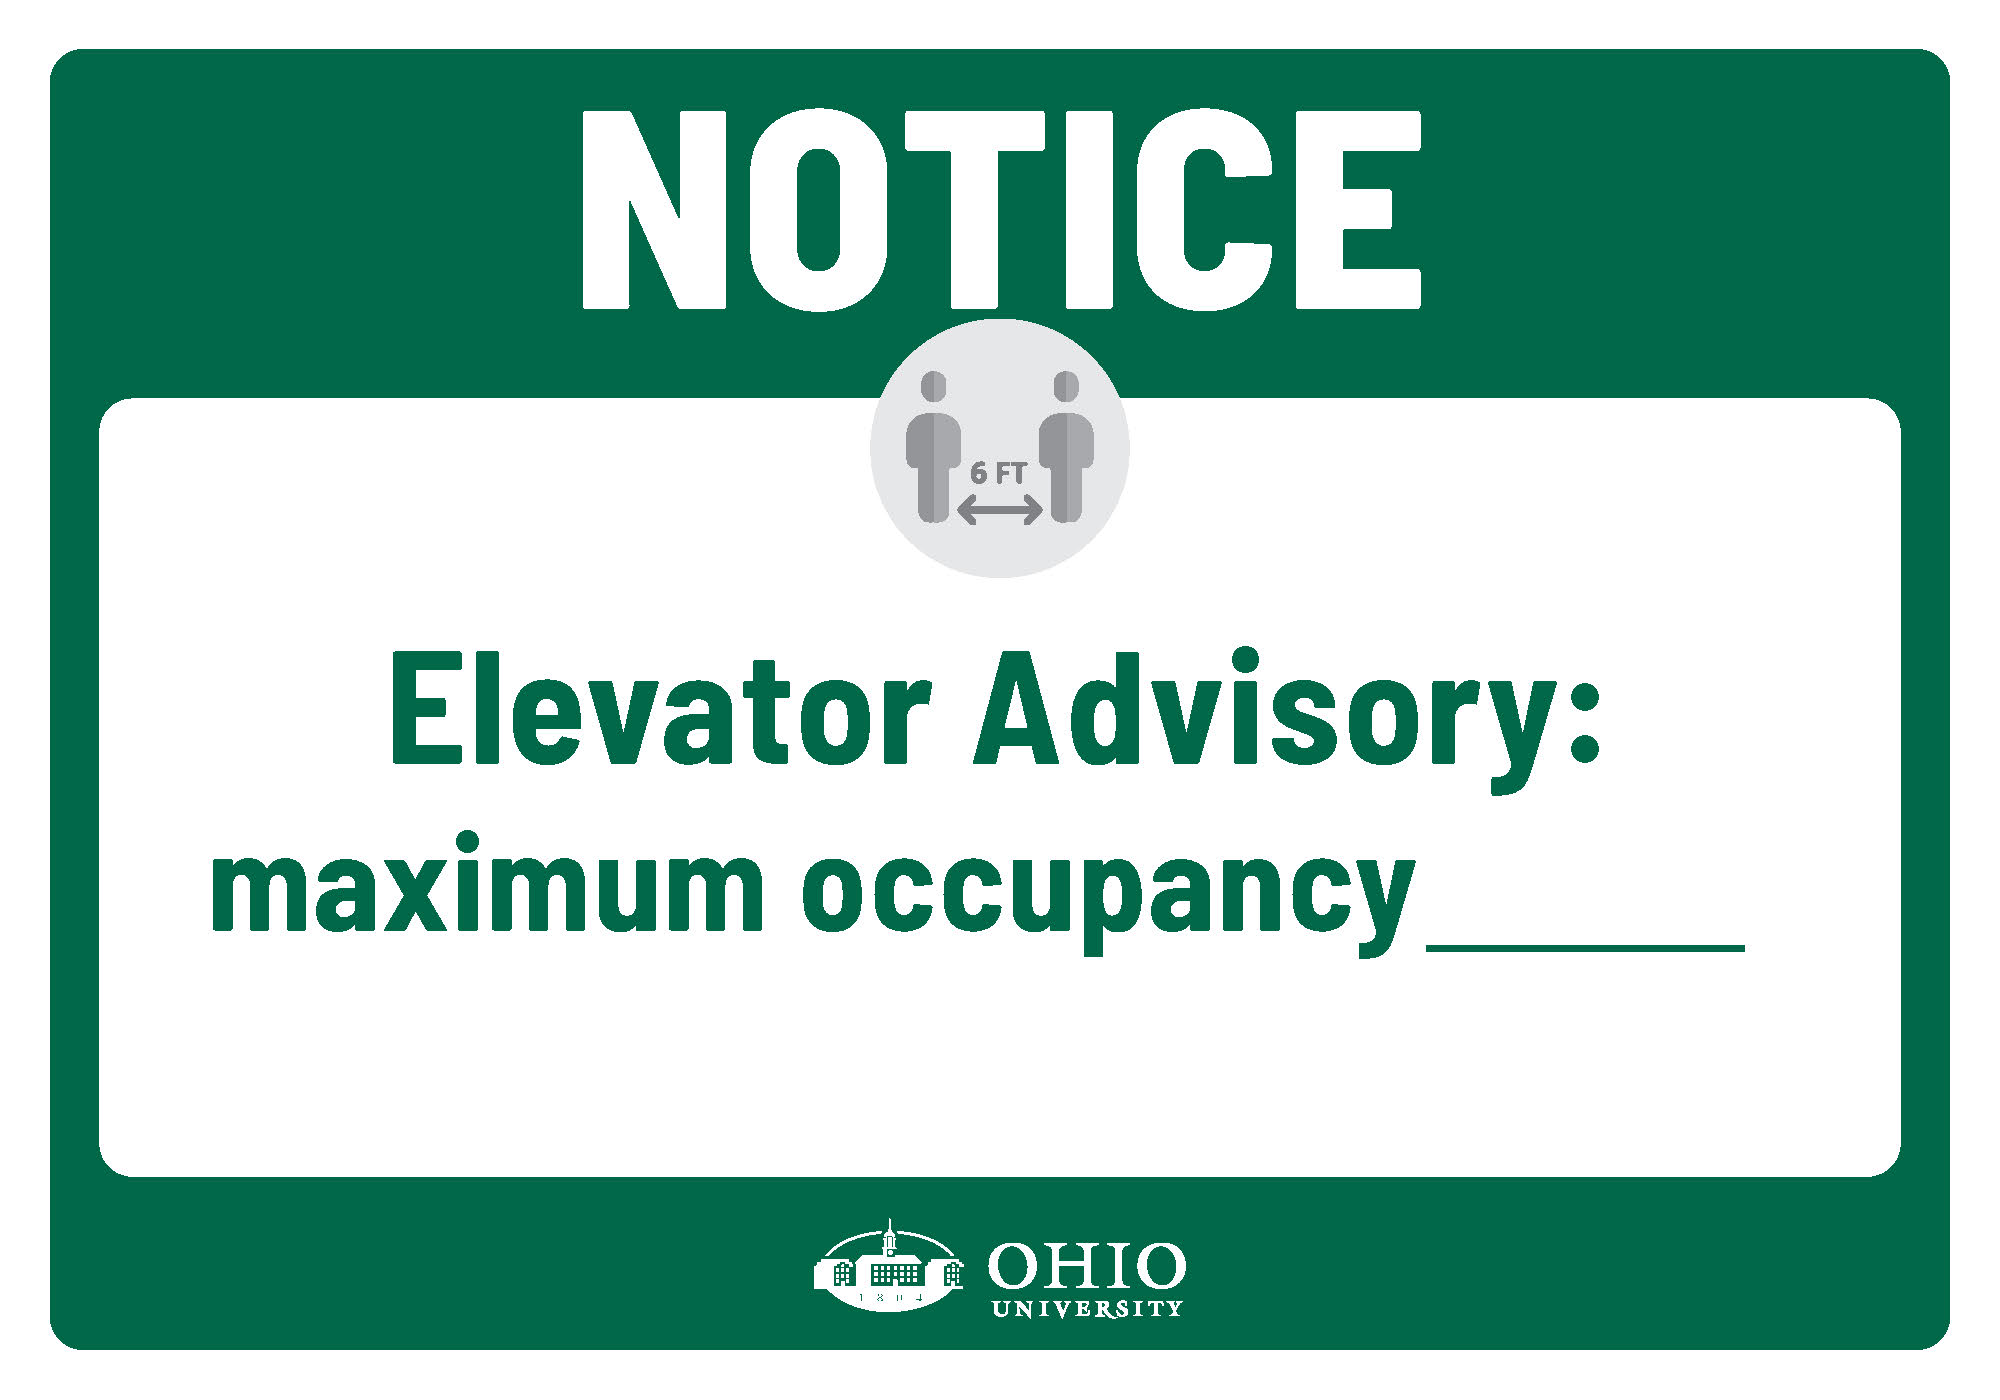 Sign that says: Notice. Elevator advisory. Maximum occupancy [blank].